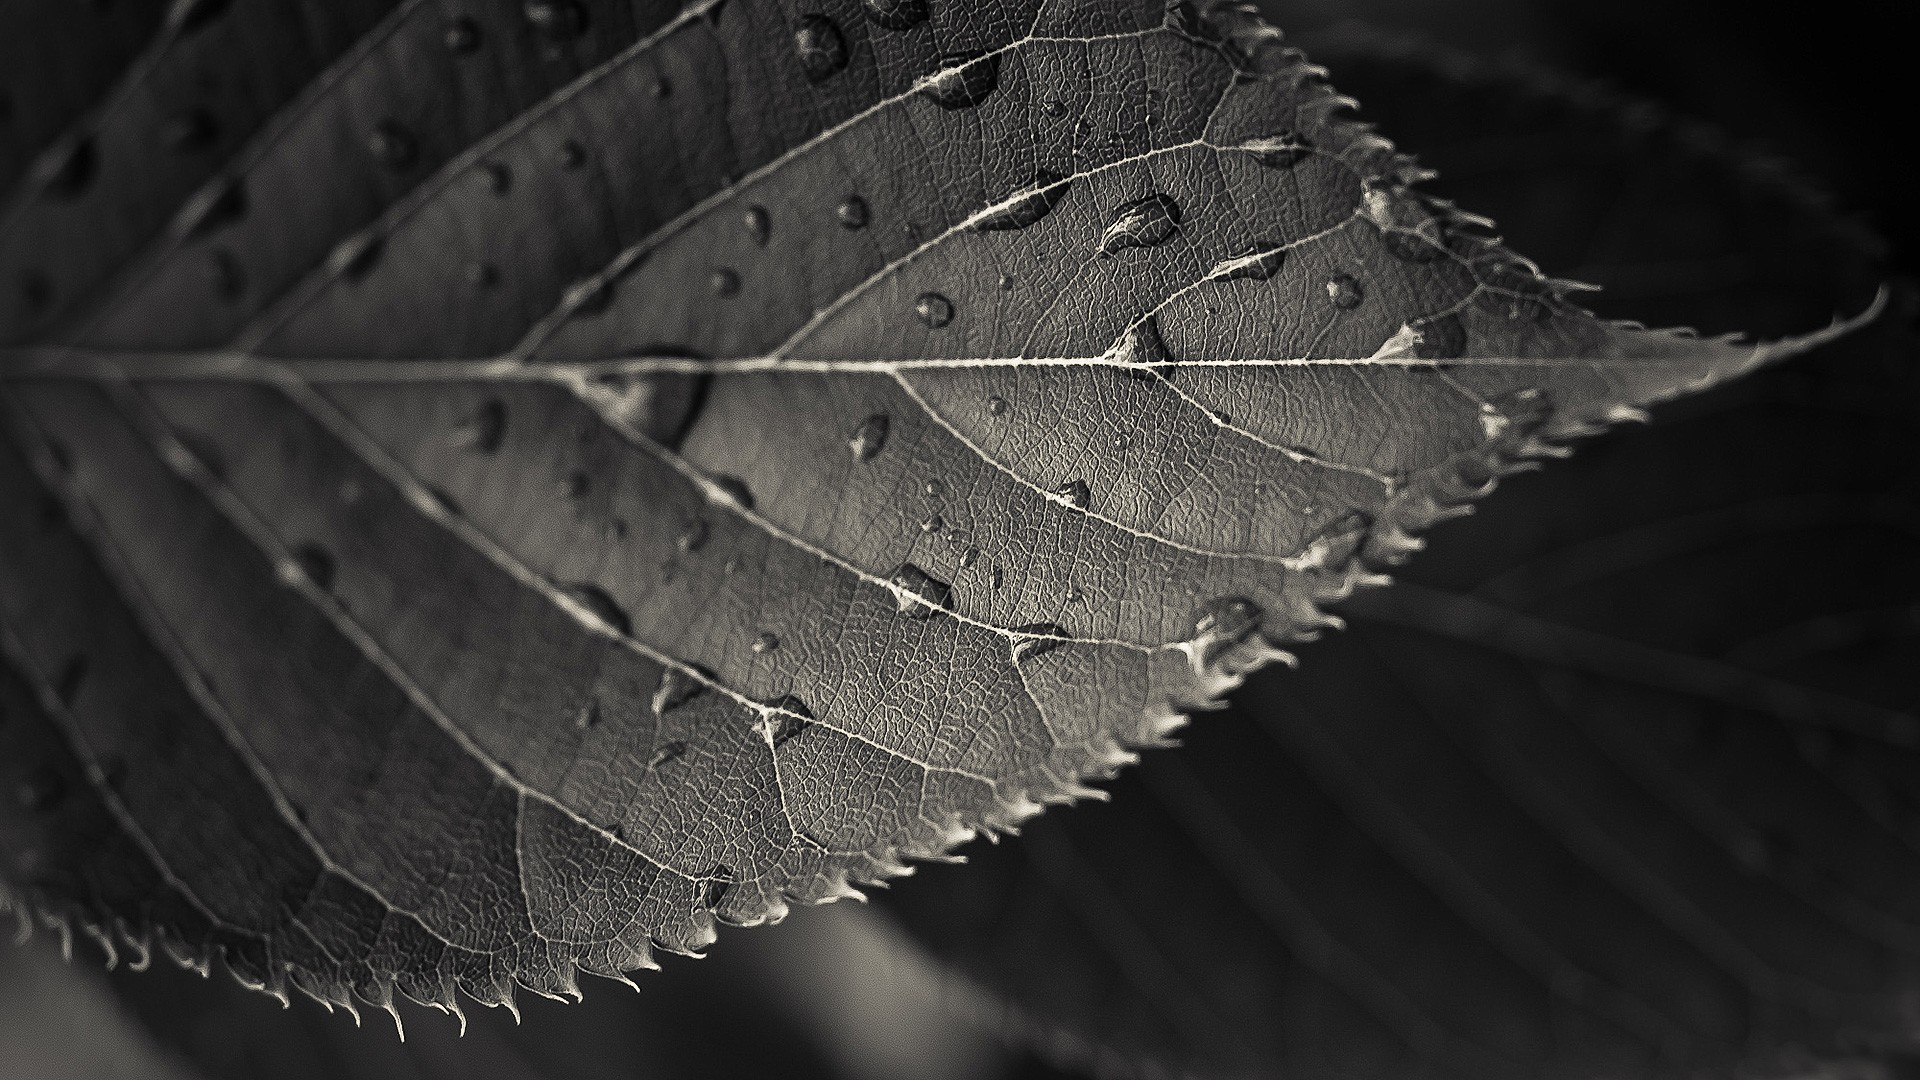 Homtom Mobile Full Hd Potos: Photography, Macro, Sepia, Leaves, Water Drops HD